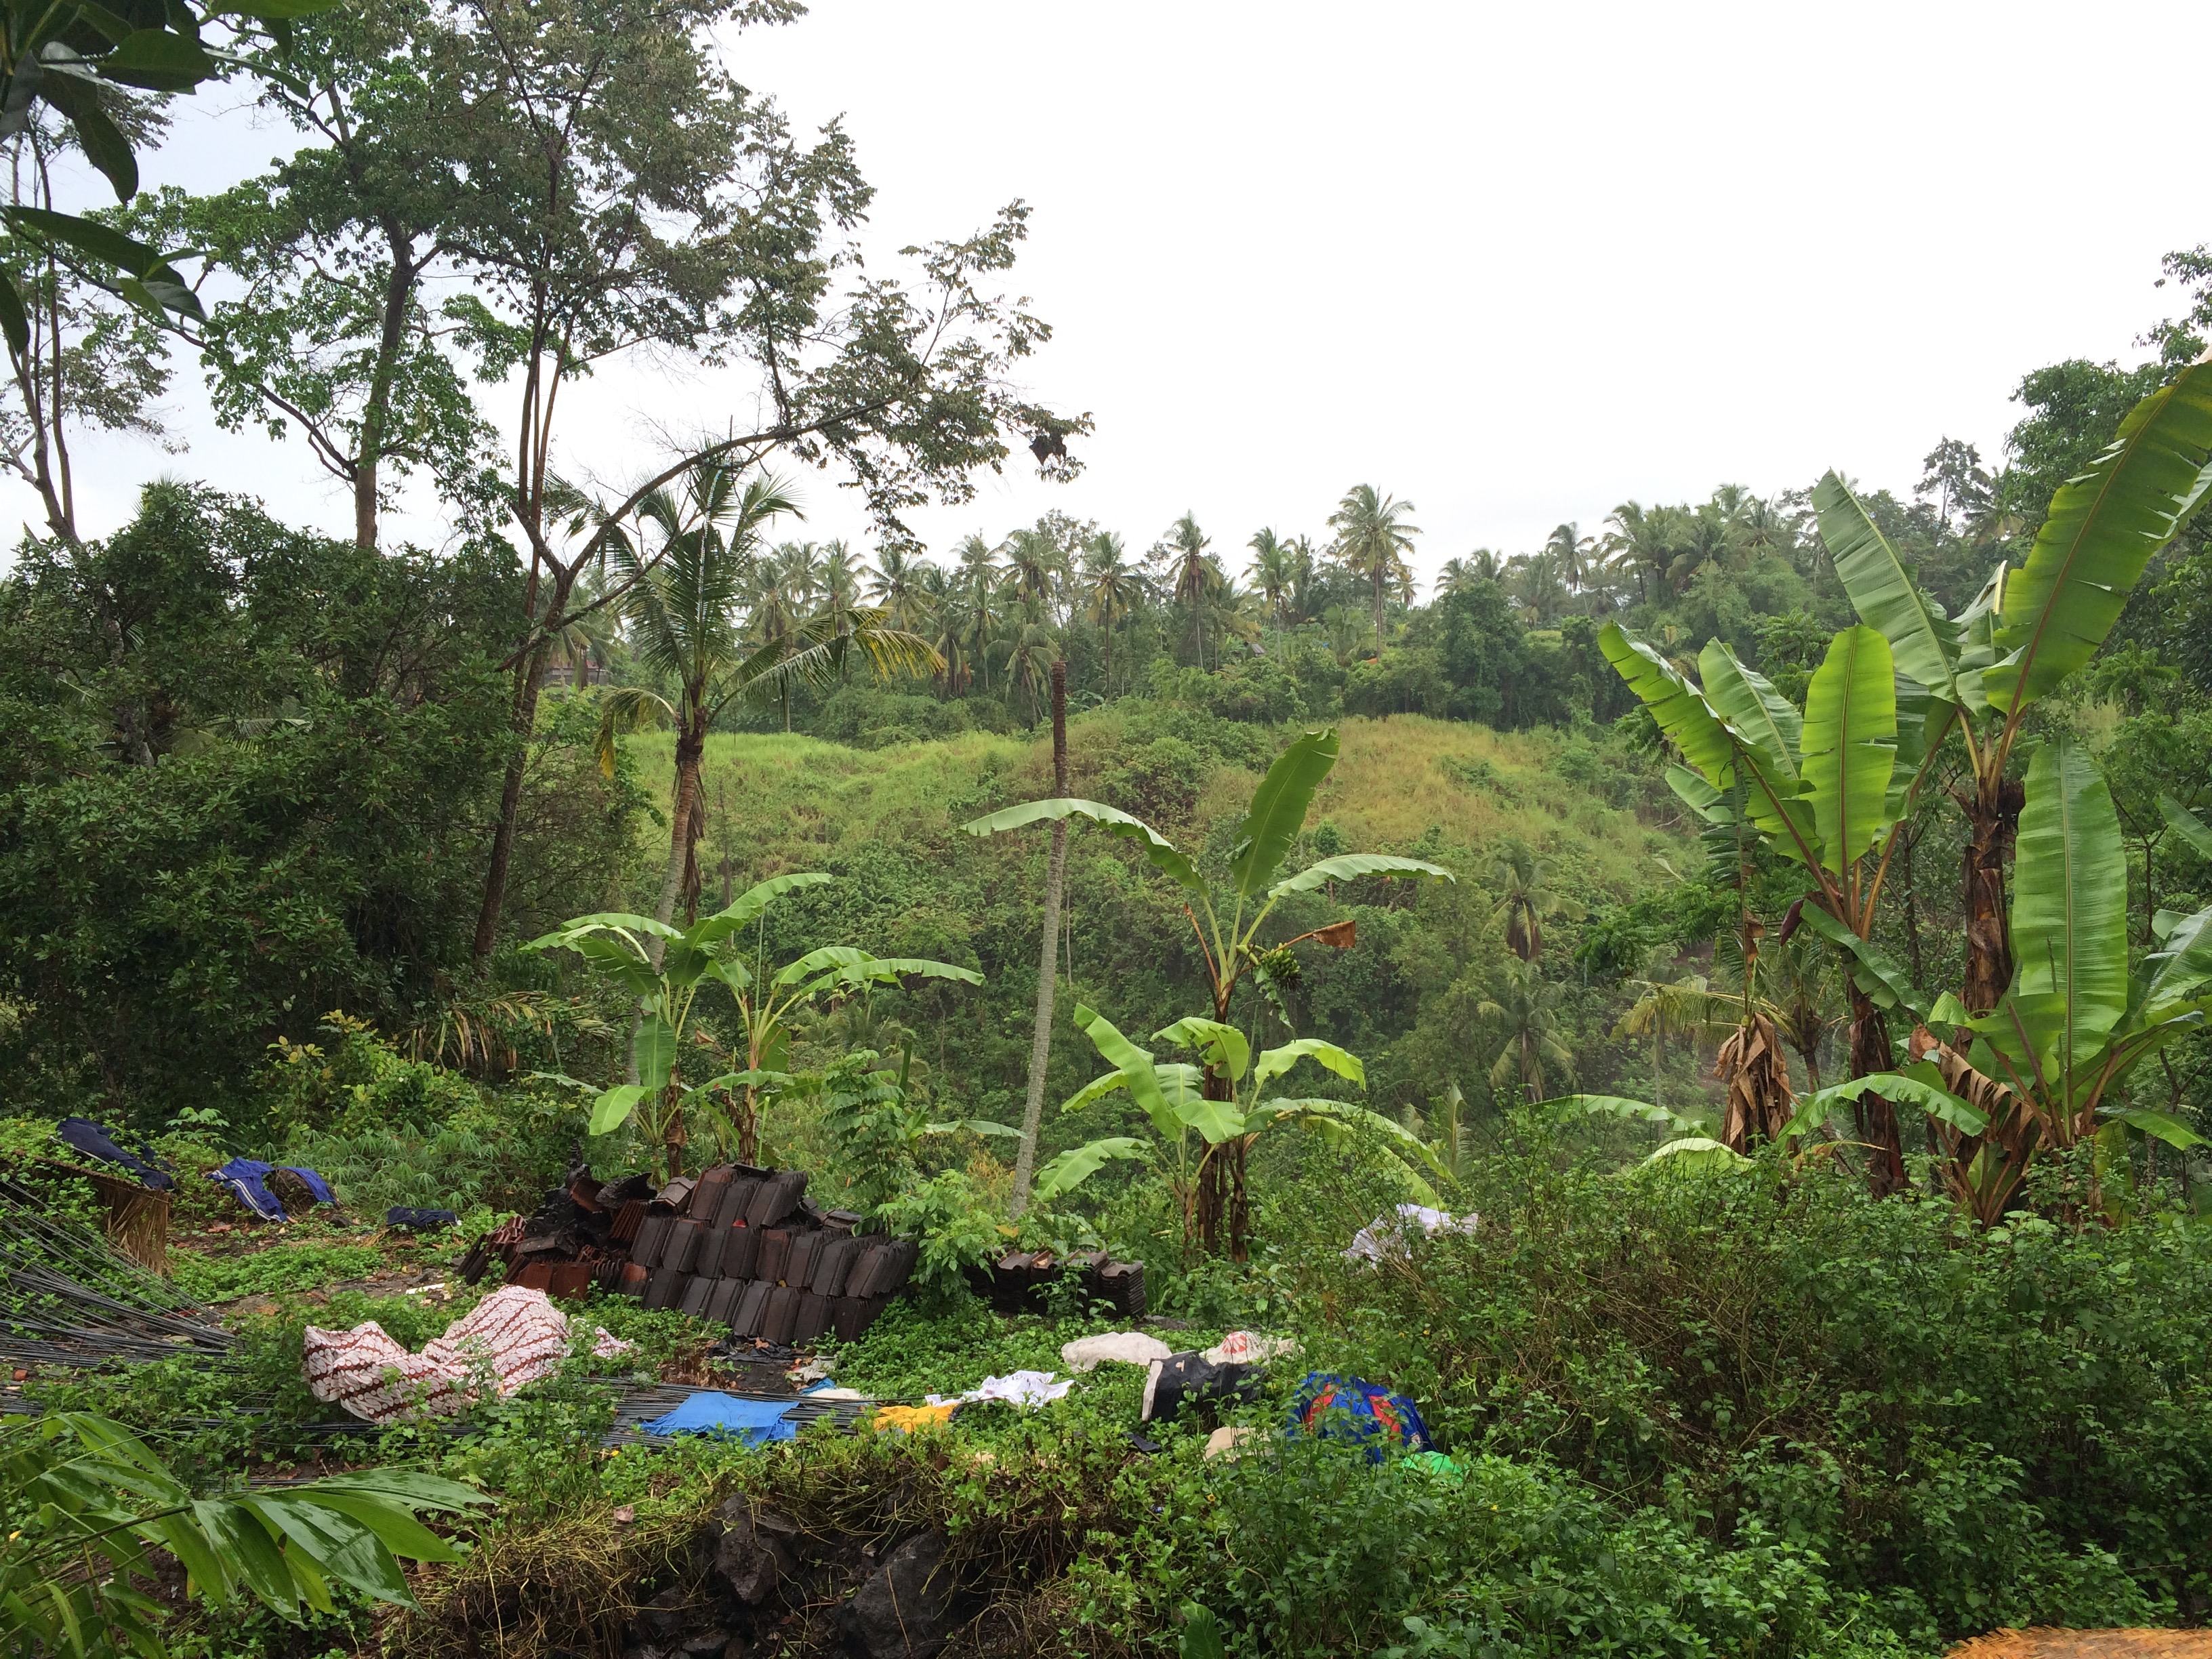 View from the Open Air Kitchen at Paon Bali Cooking Class